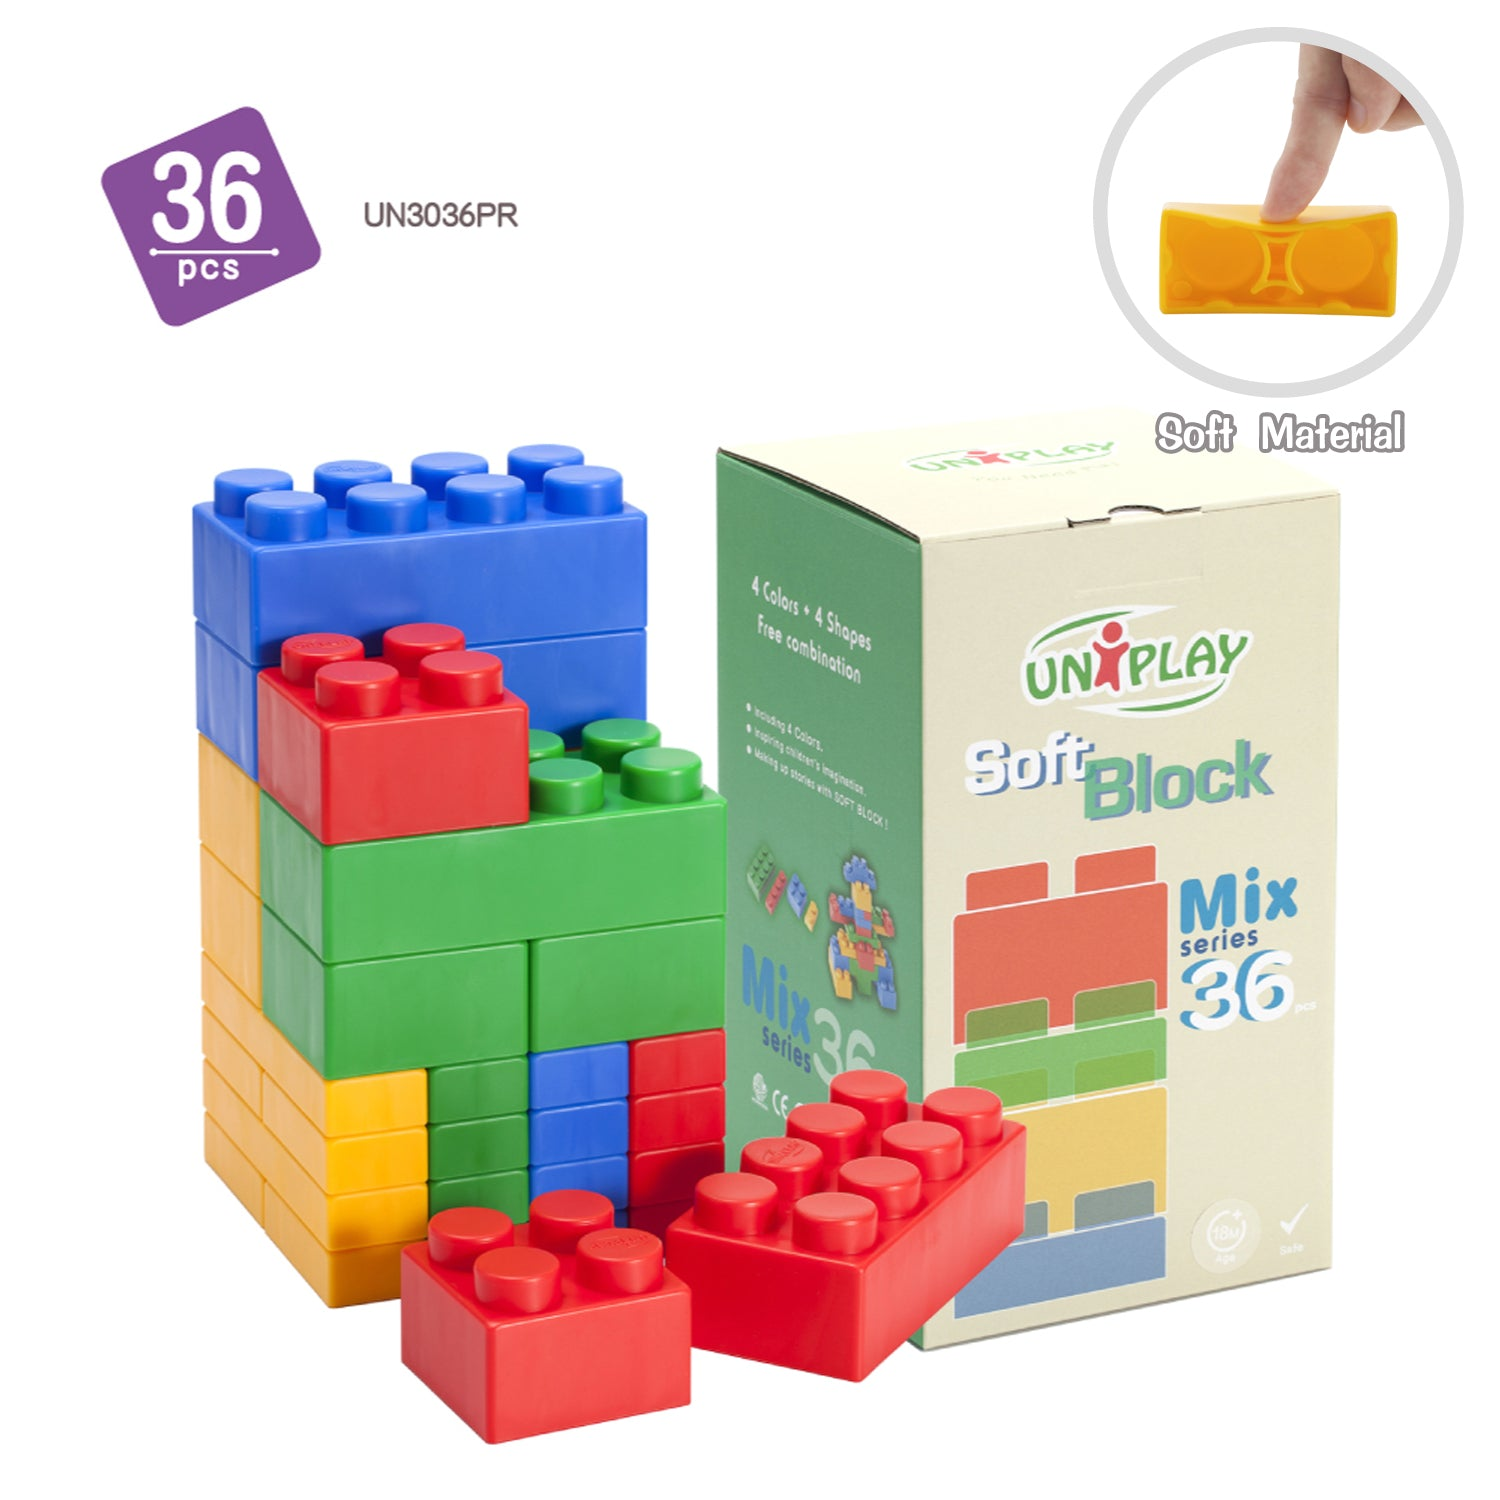 UNiPLAY Mix Soft Building Blocks with 4 Different Sizes for Ages 3 Months &Up Toddler and Baby Developmental, Educational, Creative Toy-36 Pieces Set